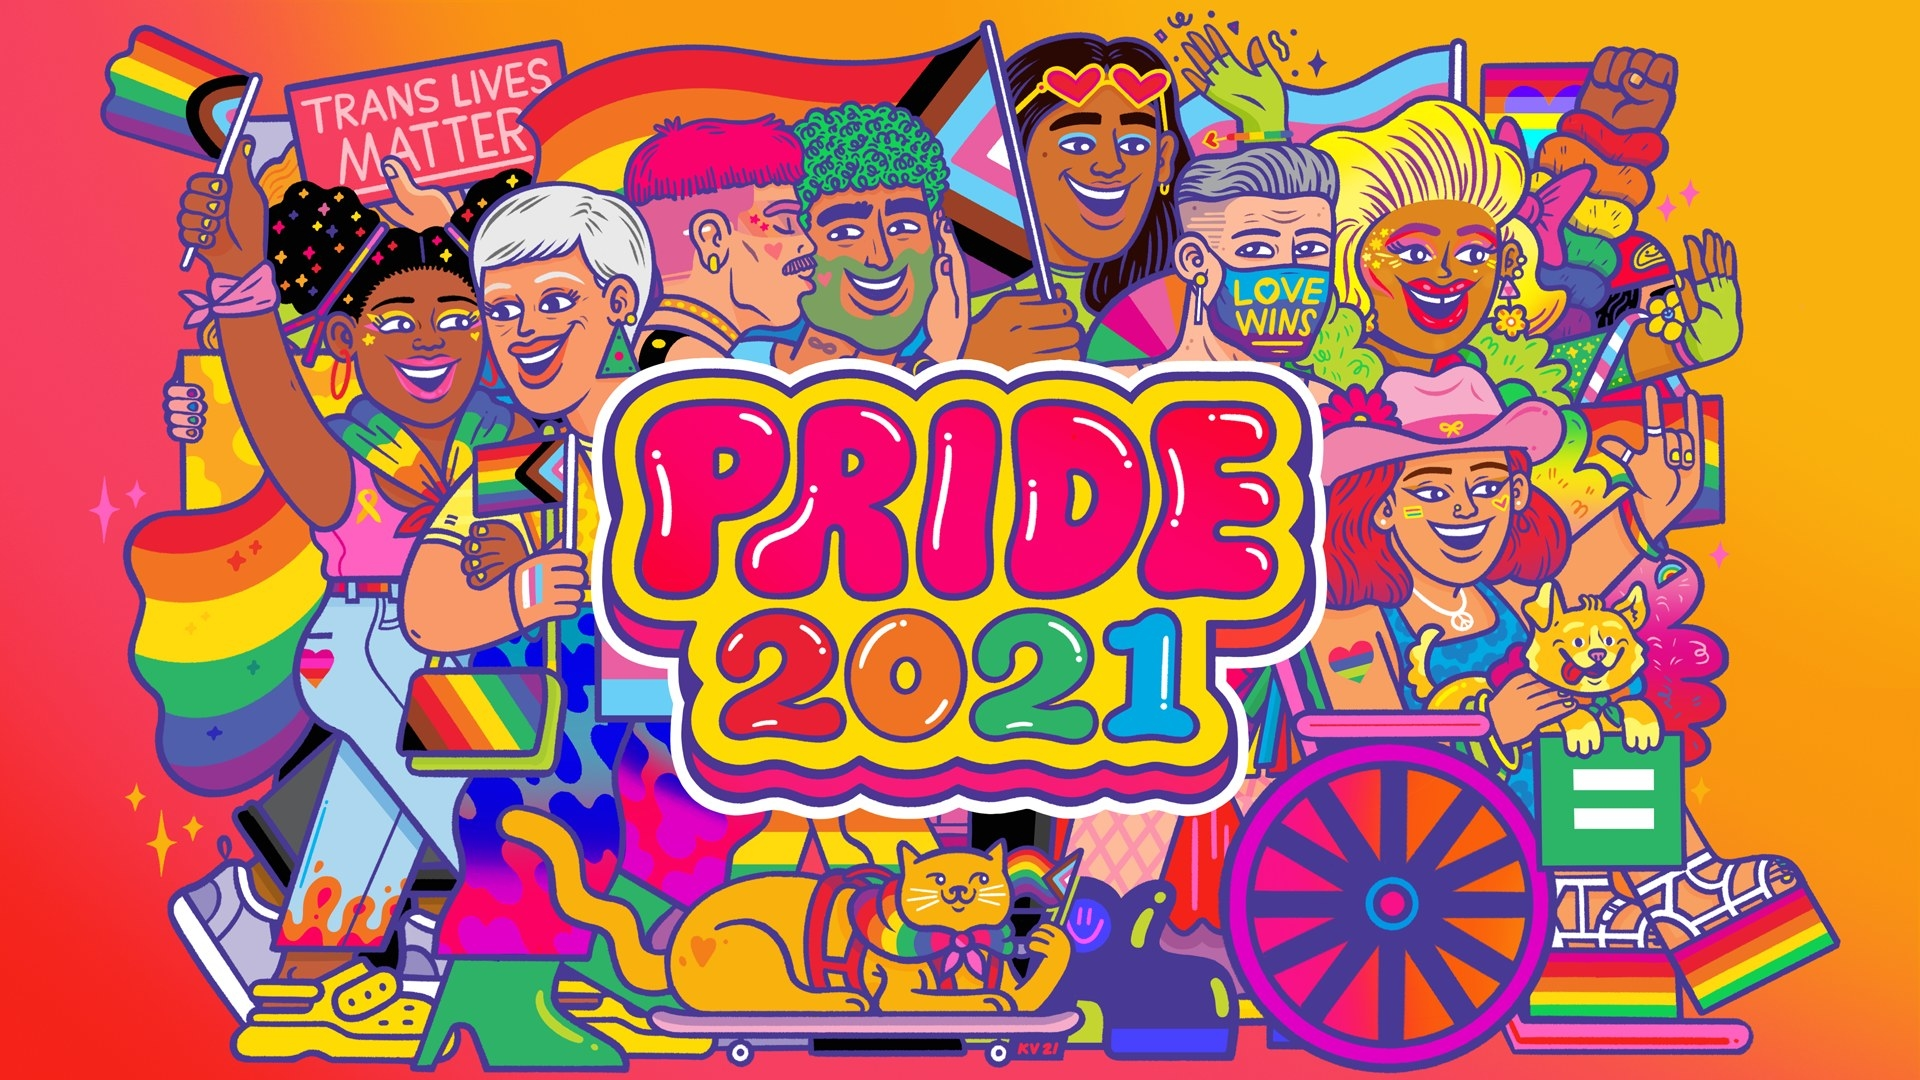 A colorful illustration of all types of people celebrating pride